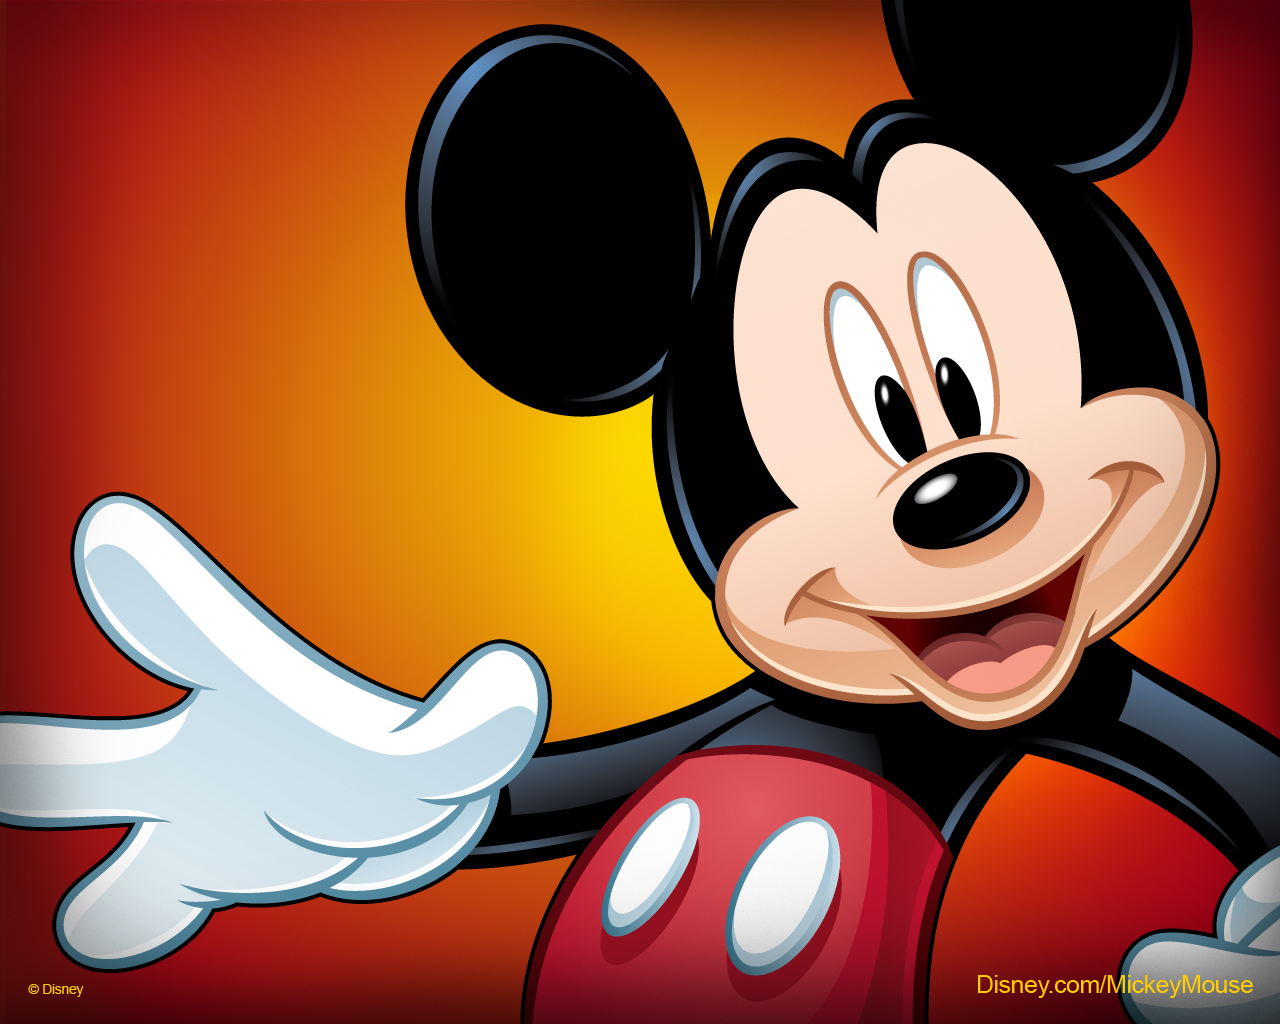 Mickey Mouse Image HD Wallpaper 1204 Wallpaper computer best 1280x1024